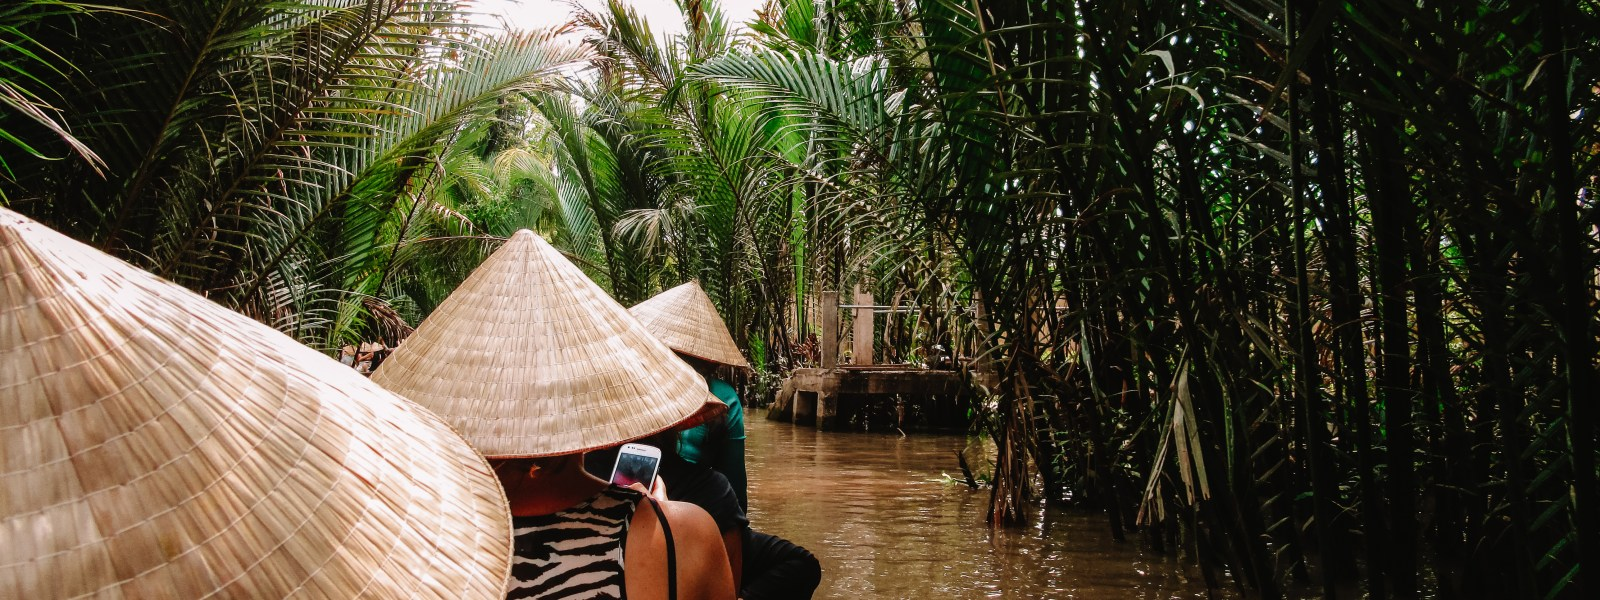 How to make the perfect travel itinerary for Vietnam